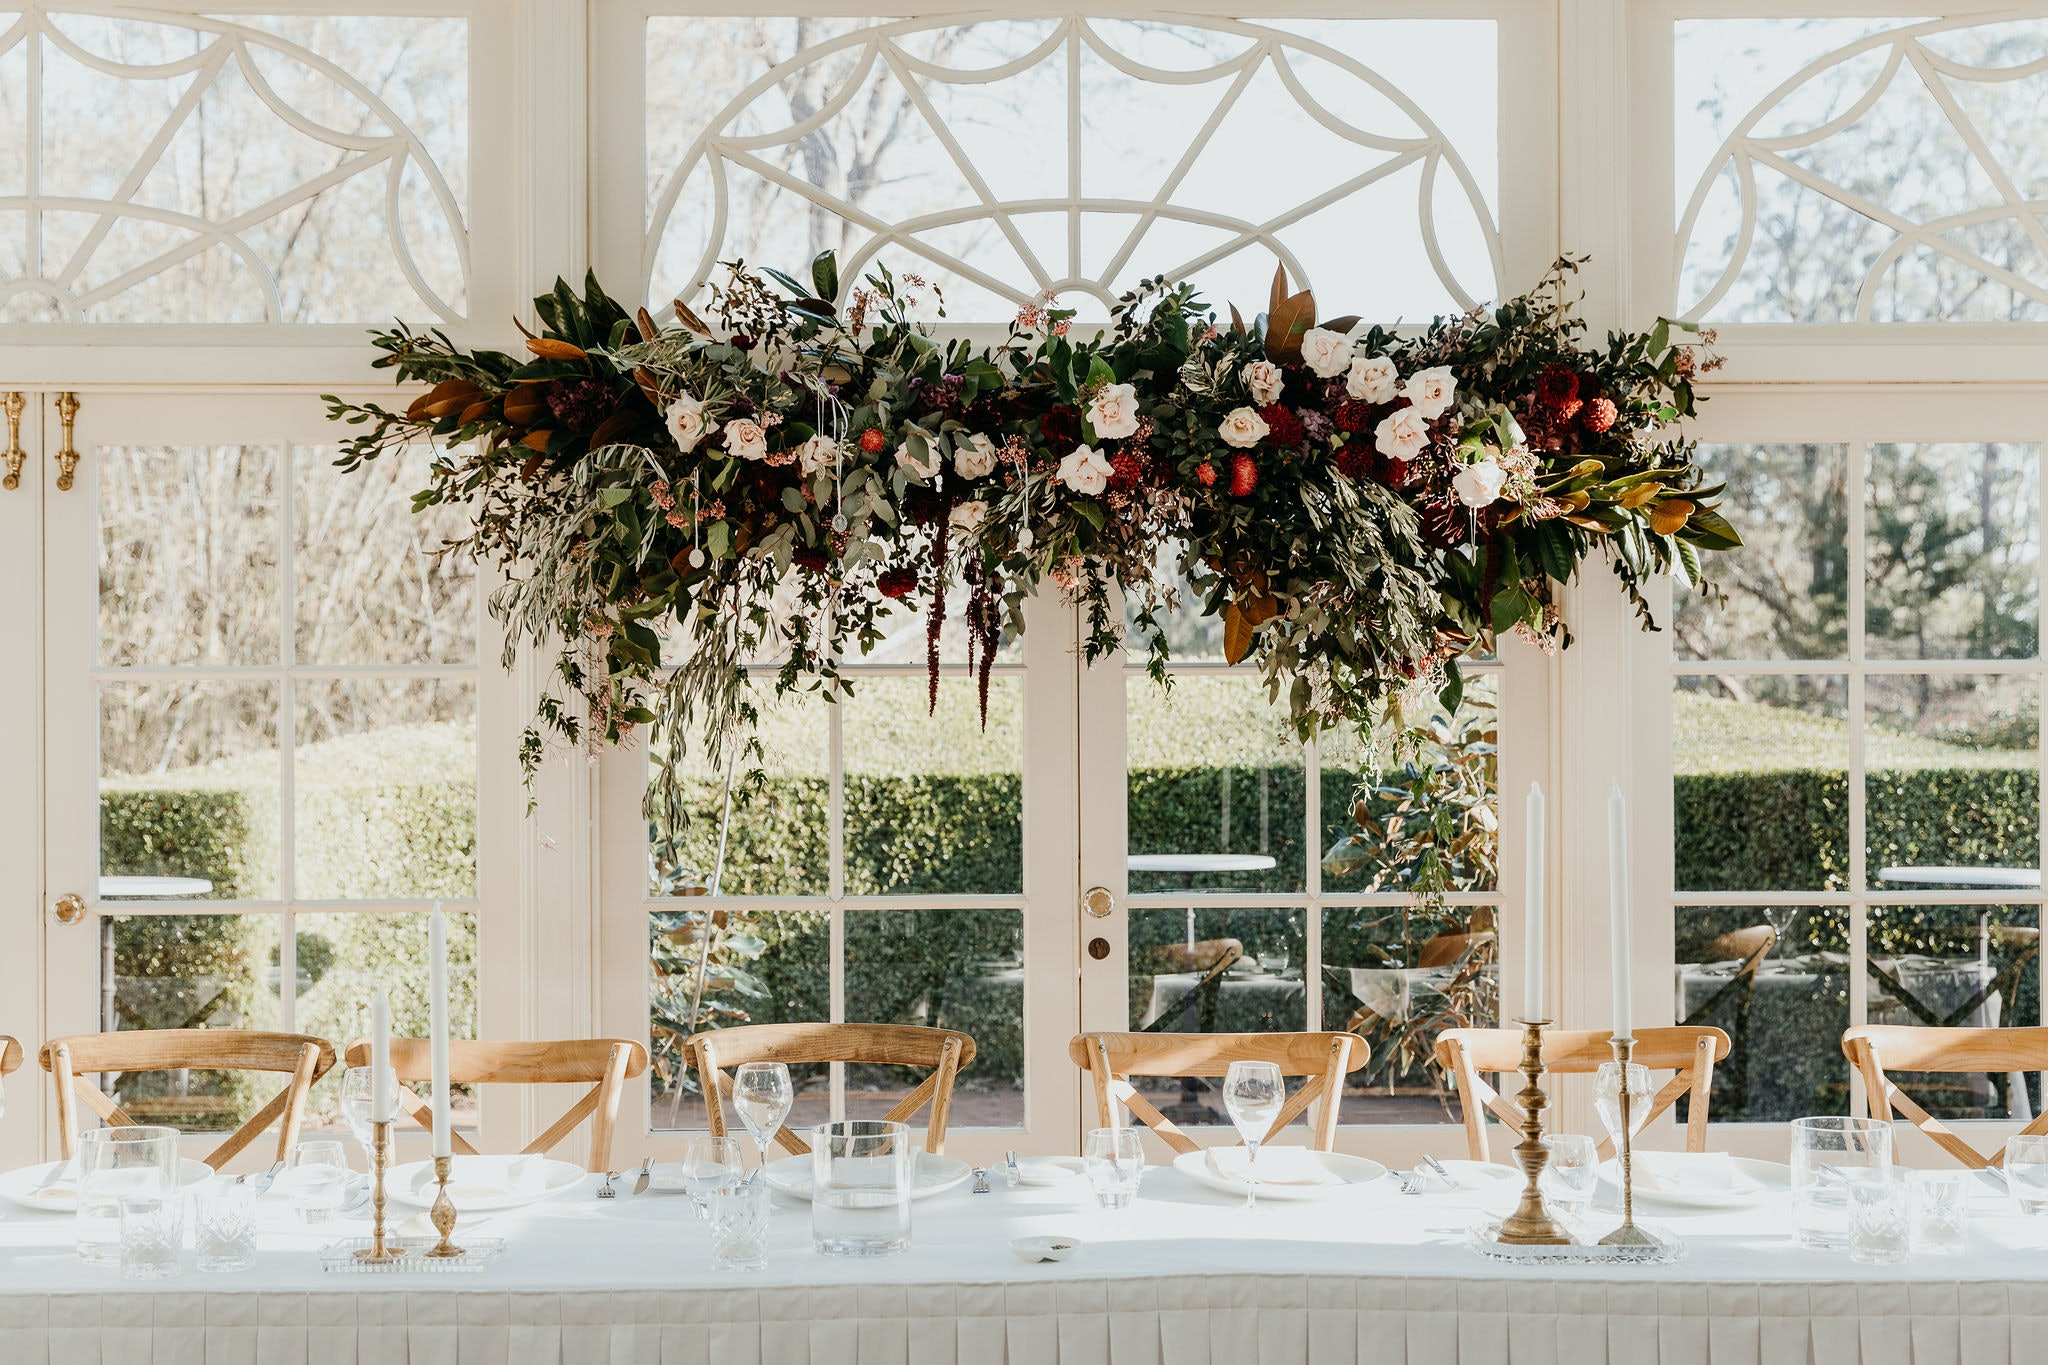 Floral hanging arrangement above table set for wedding guests